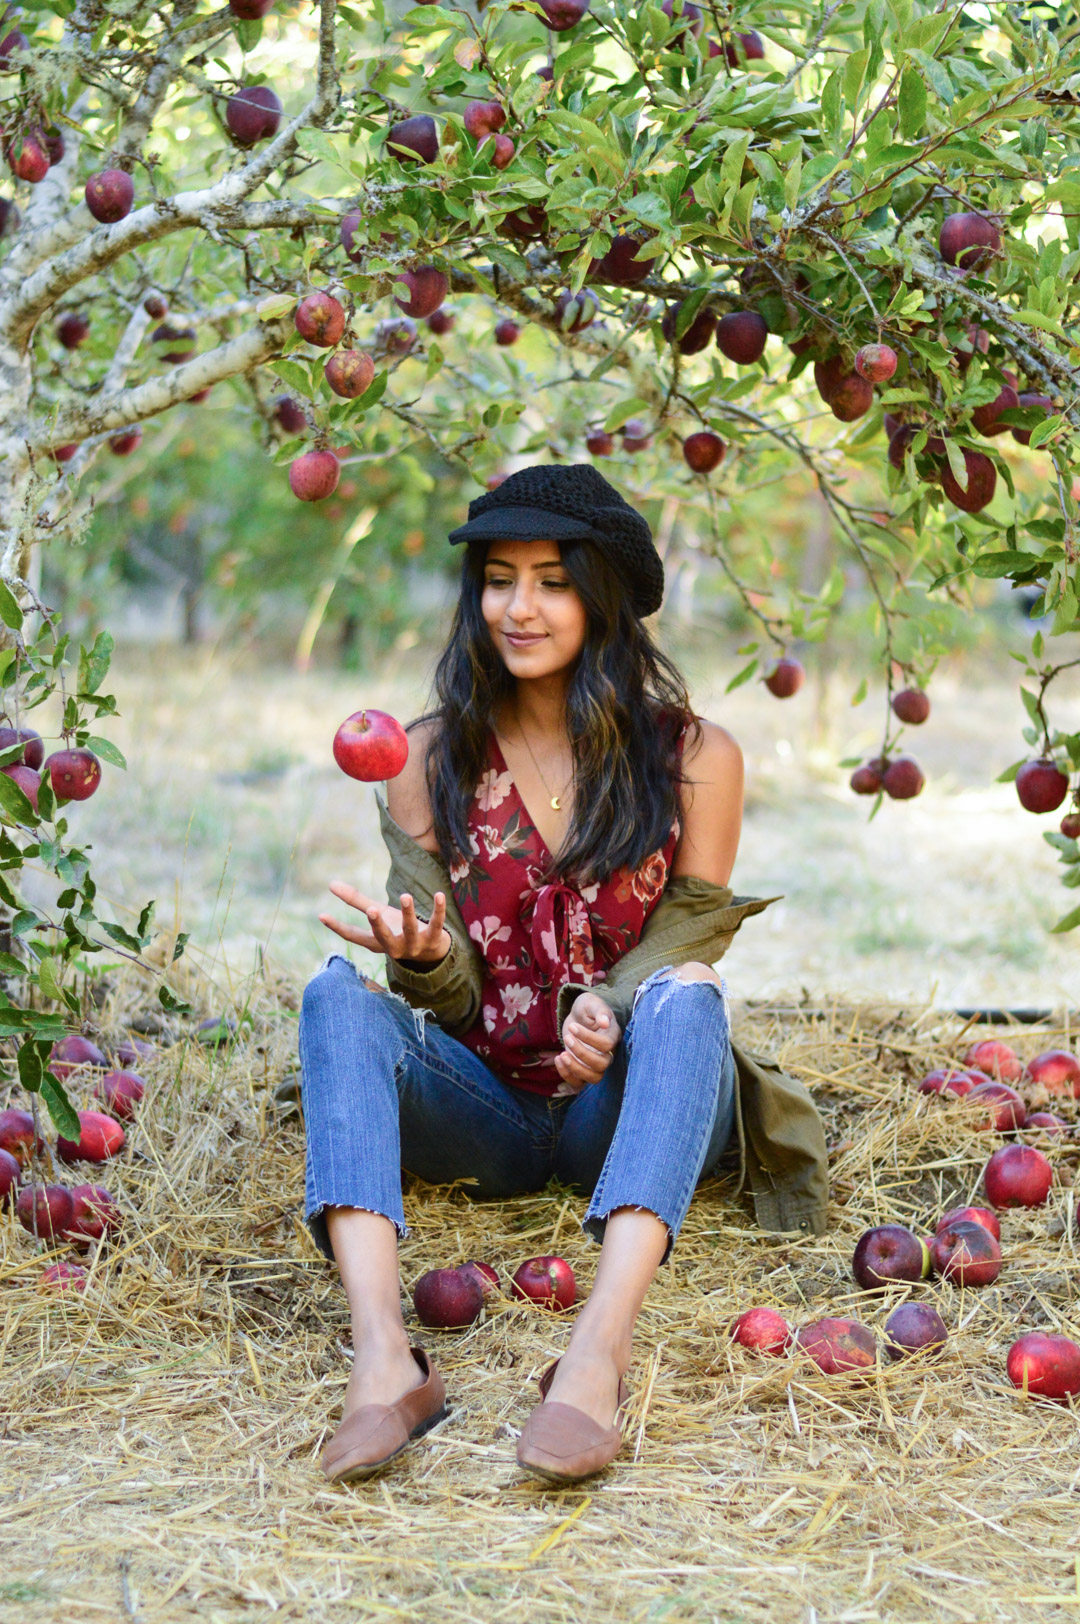 apple-picking-fall-florals-utility-jacket-california-style 1